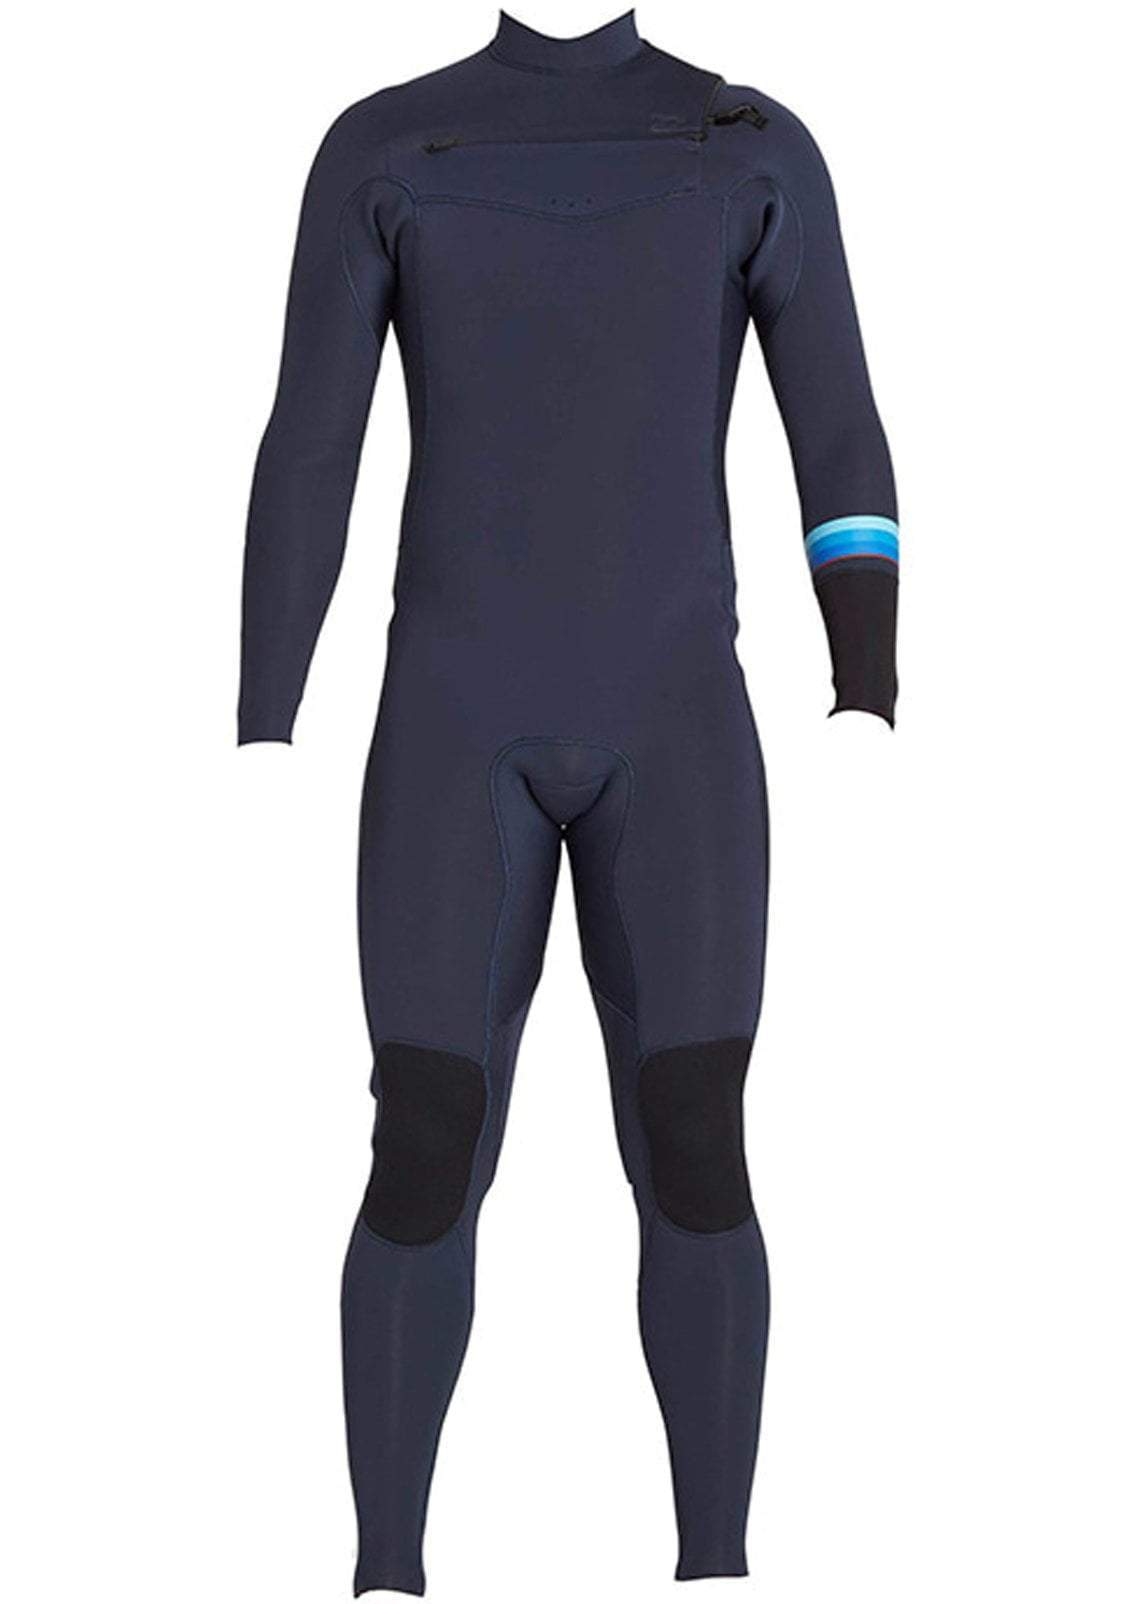 Billabong 3/2 Revolution DBah Chest Zip Wetsuit